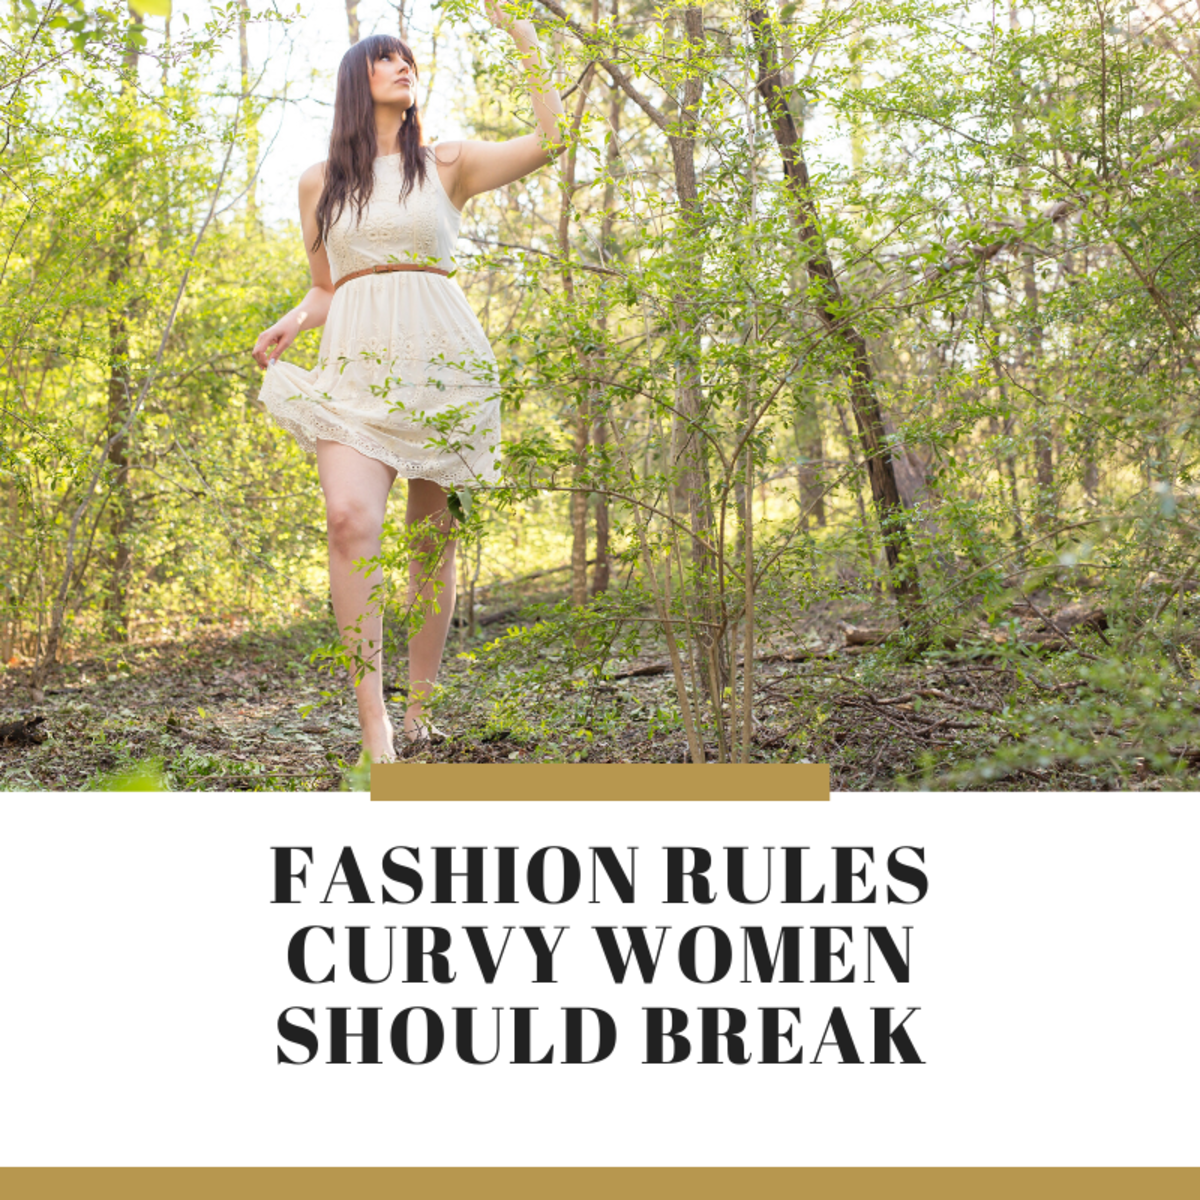 9 Fashion Rules Curvy and Plus Size Women Should Break